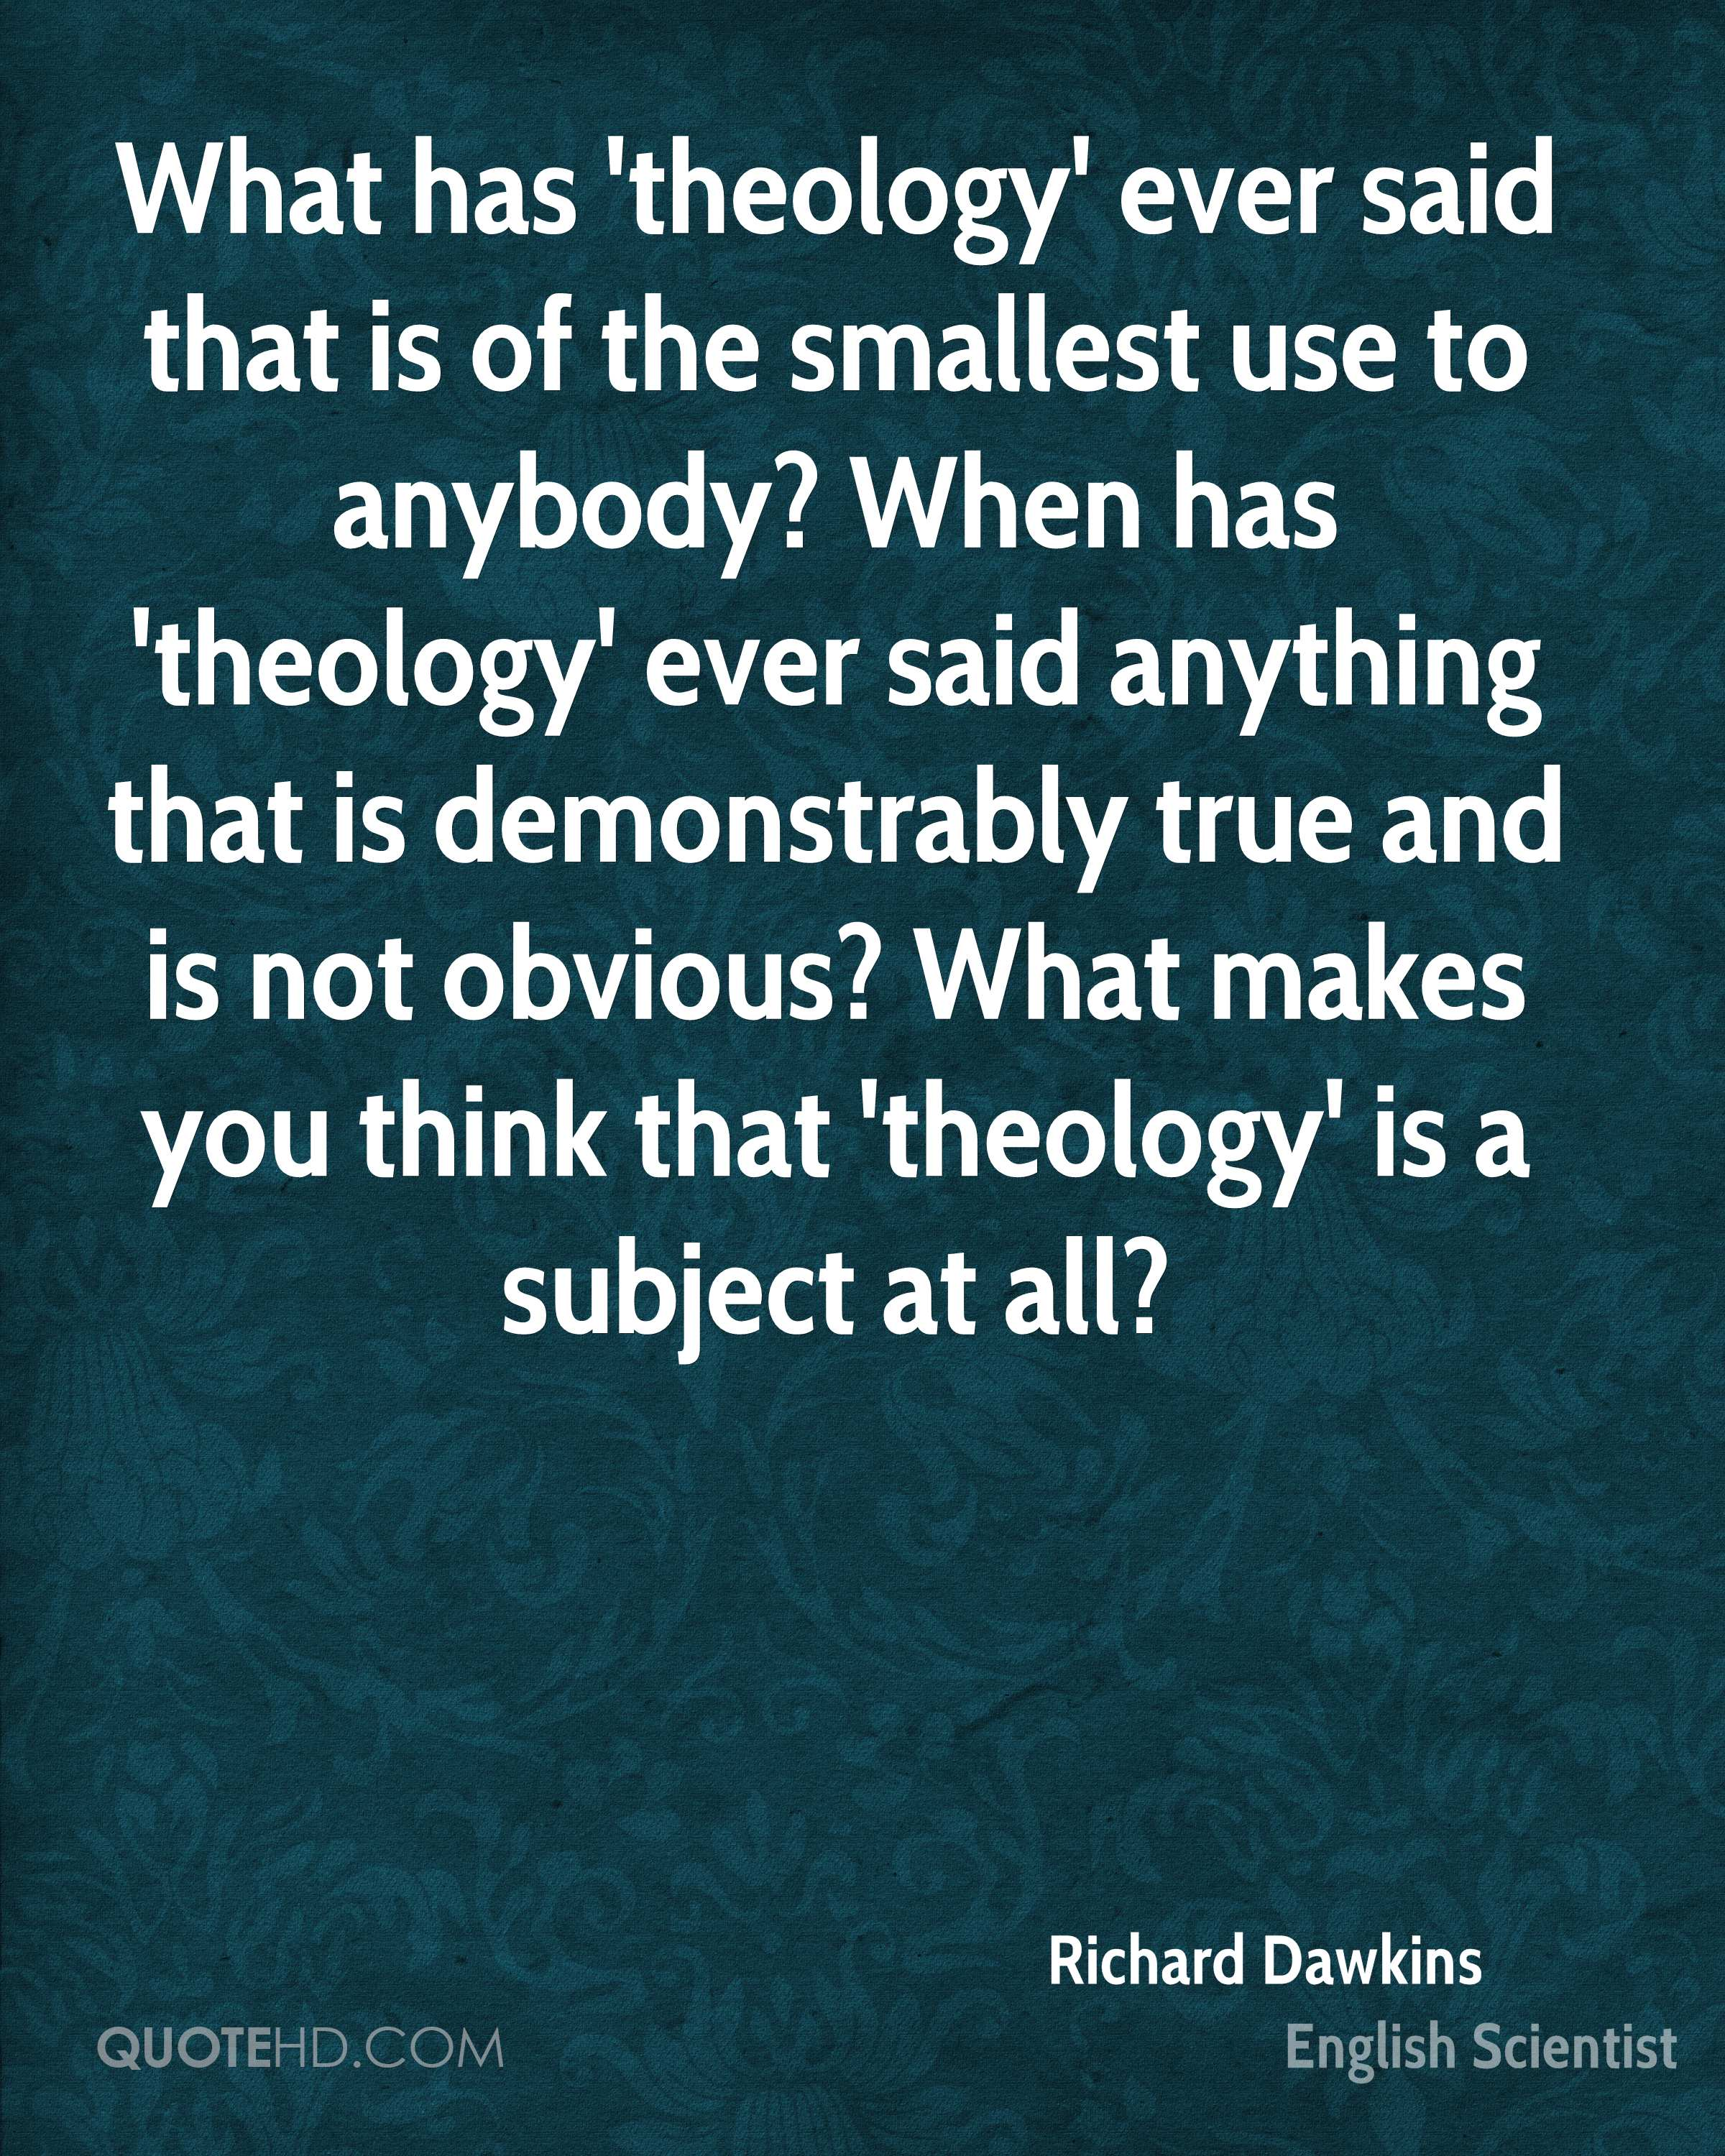 What has 'theology' ever said that is of the smallest use to anybody? When has 'theology' ever said anything that is demonstrably true and is not obvious? What makes you think that 'theology' is a subject at all?